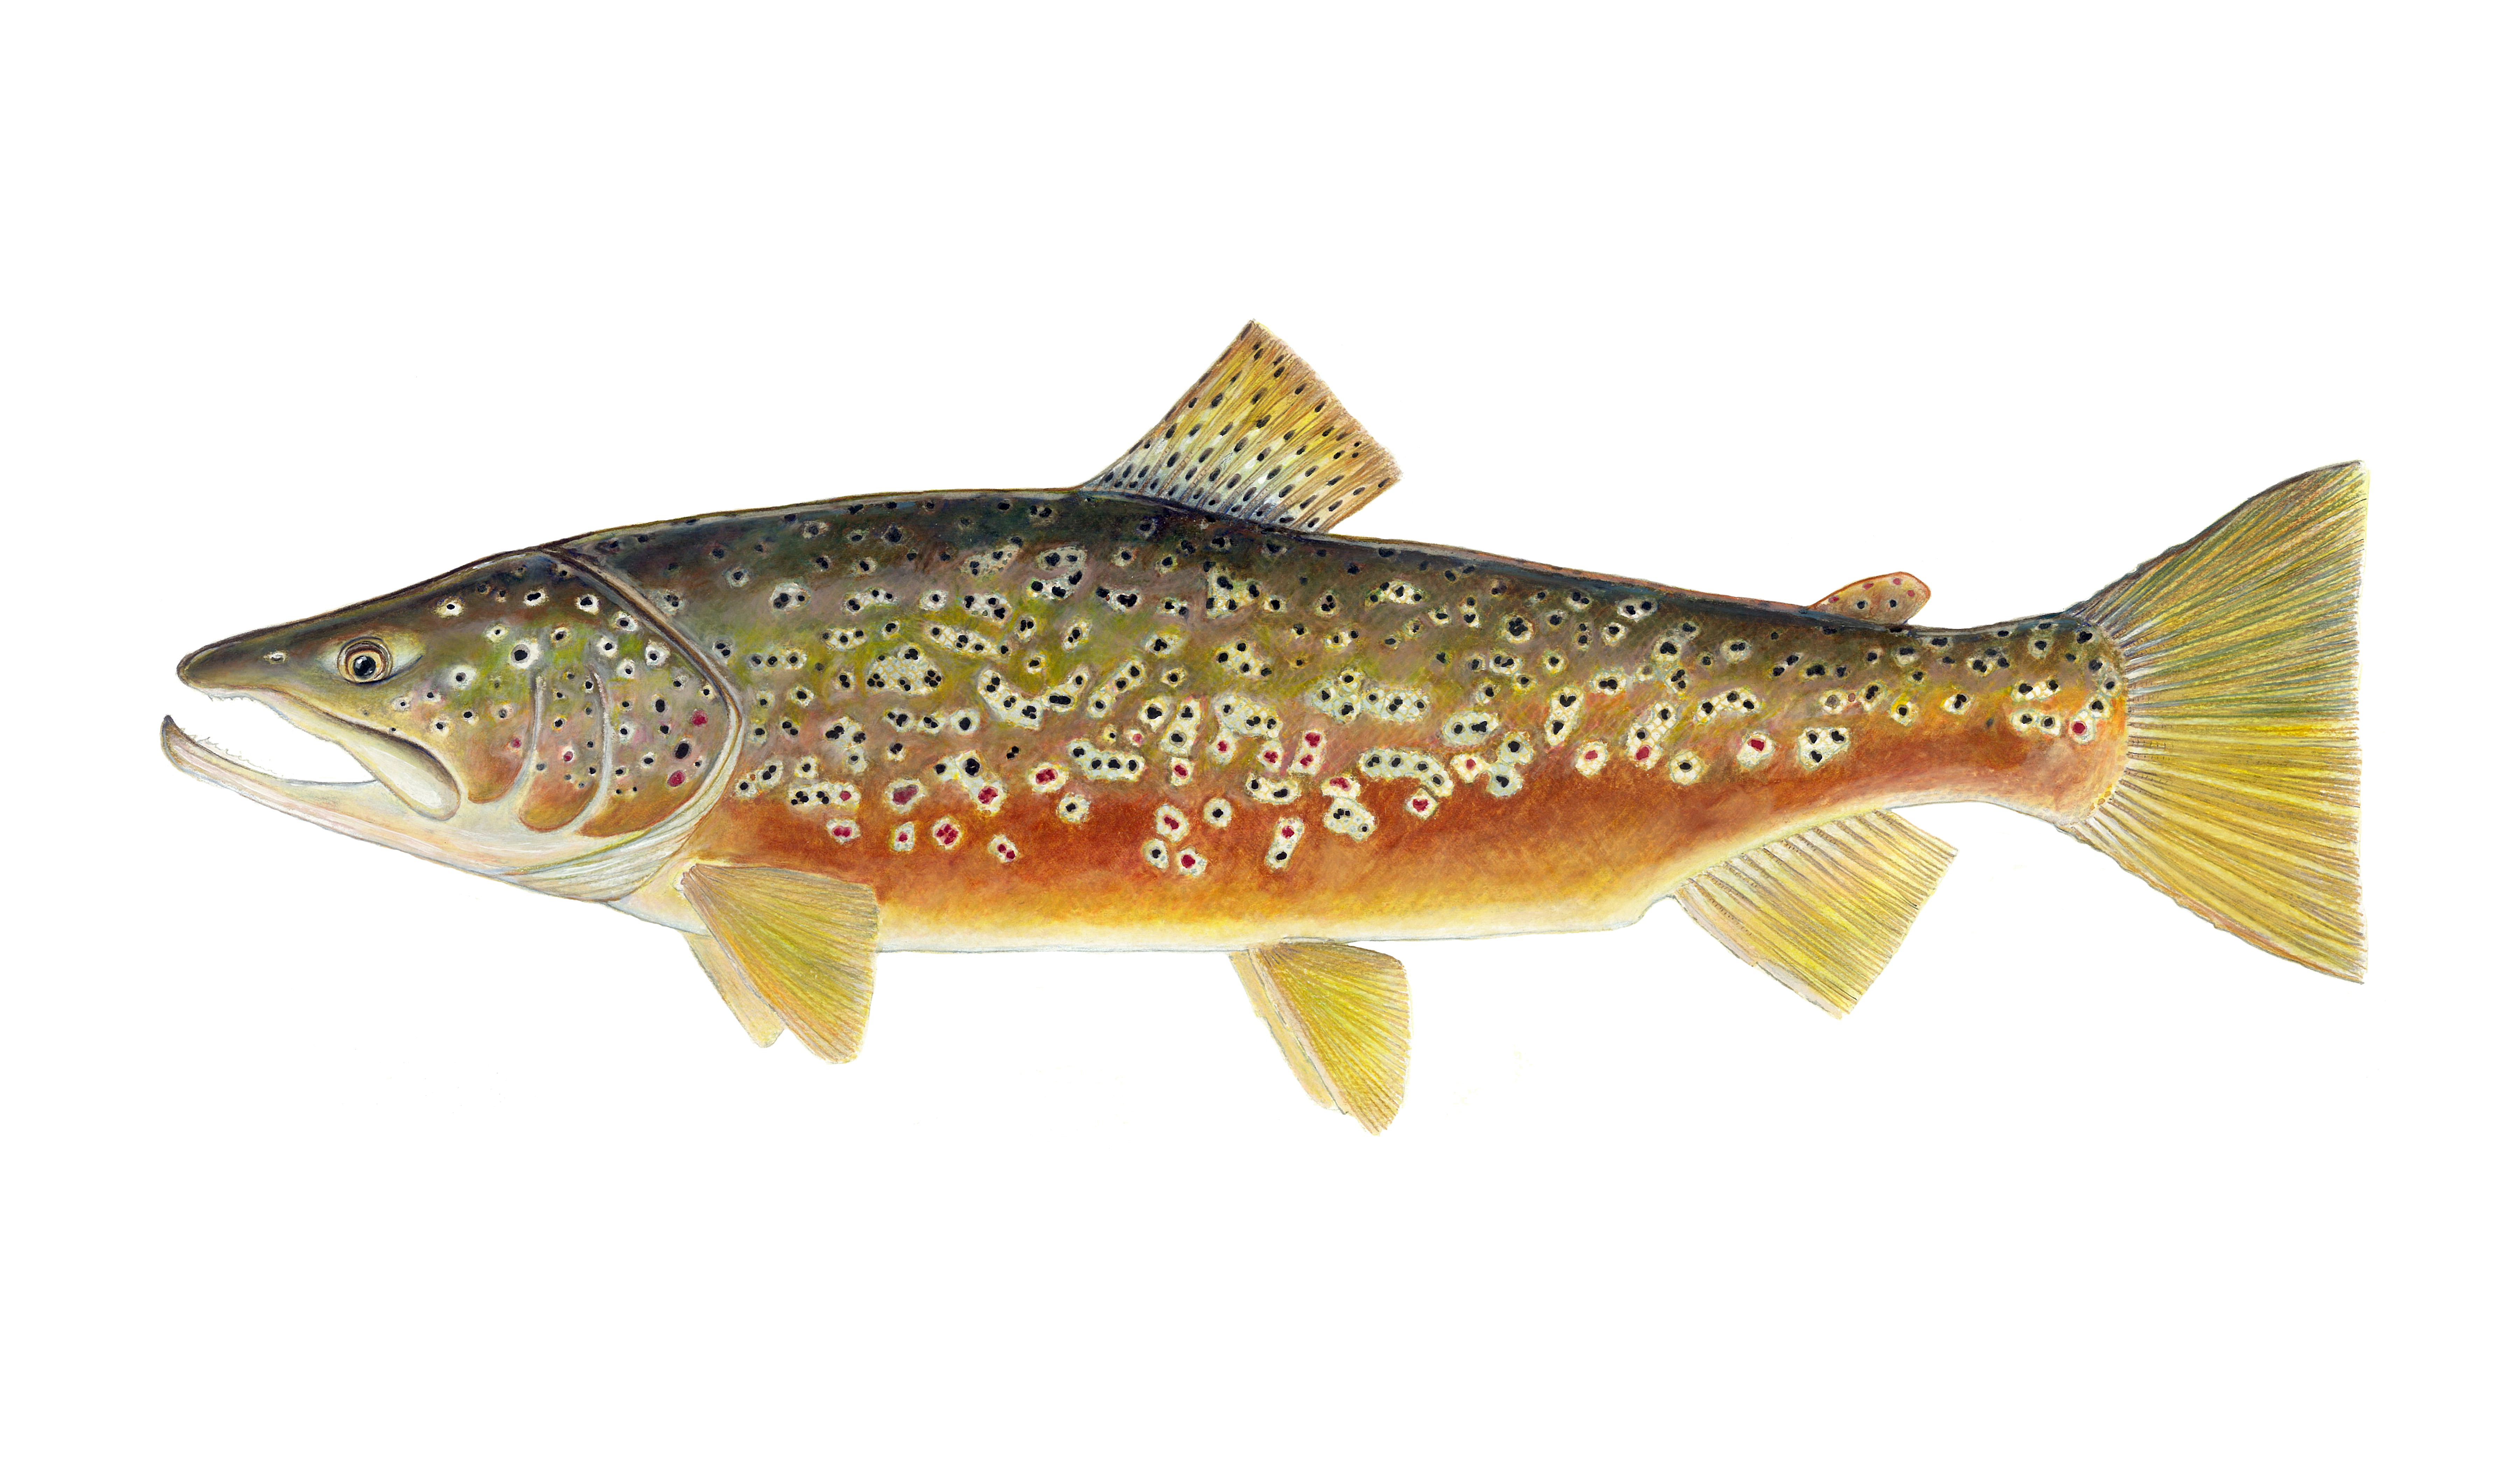 Brown Trout by Karen Talbot